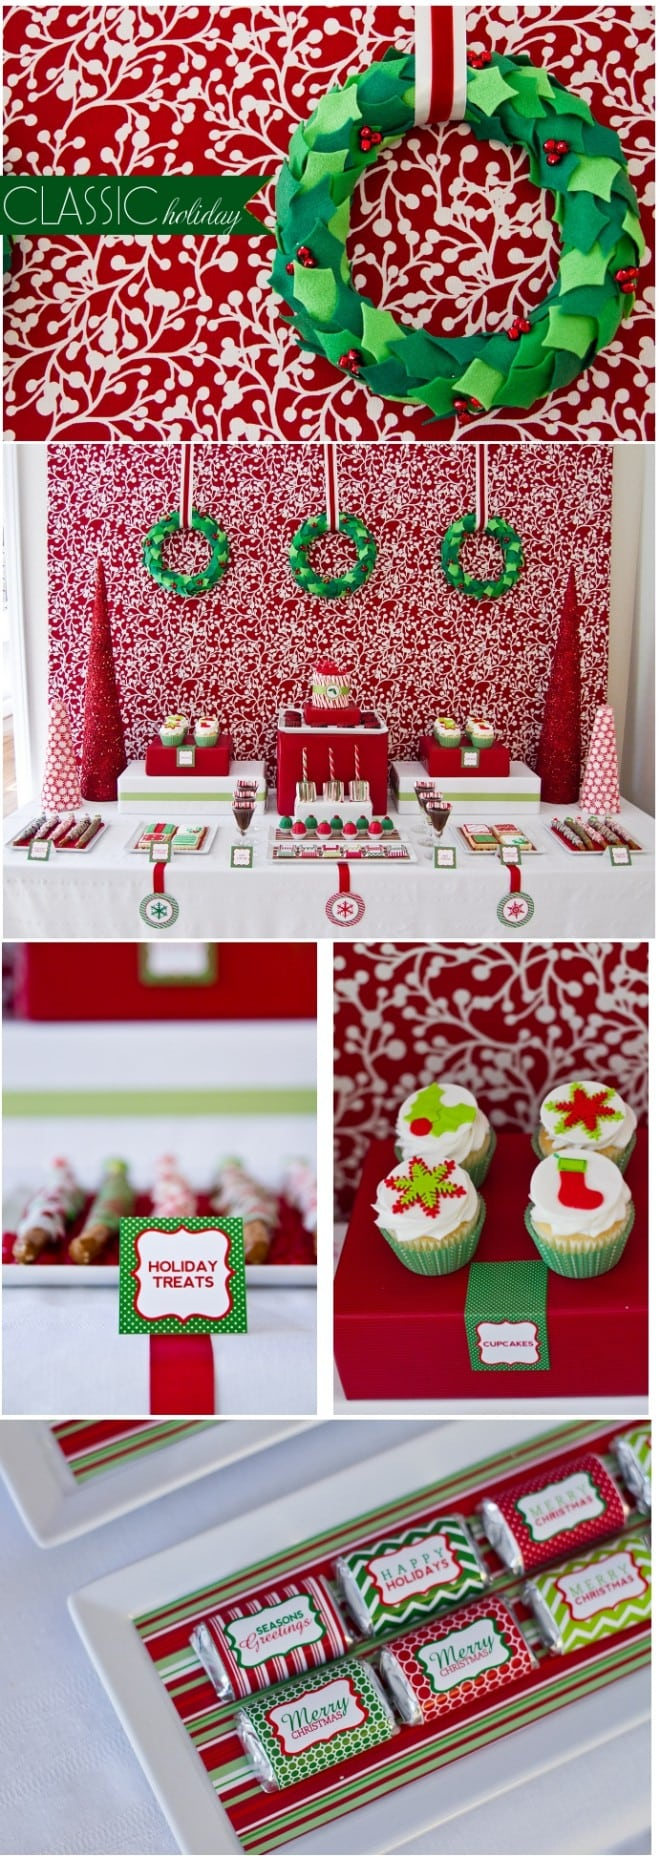 classic red and green holiday party from anders ruff